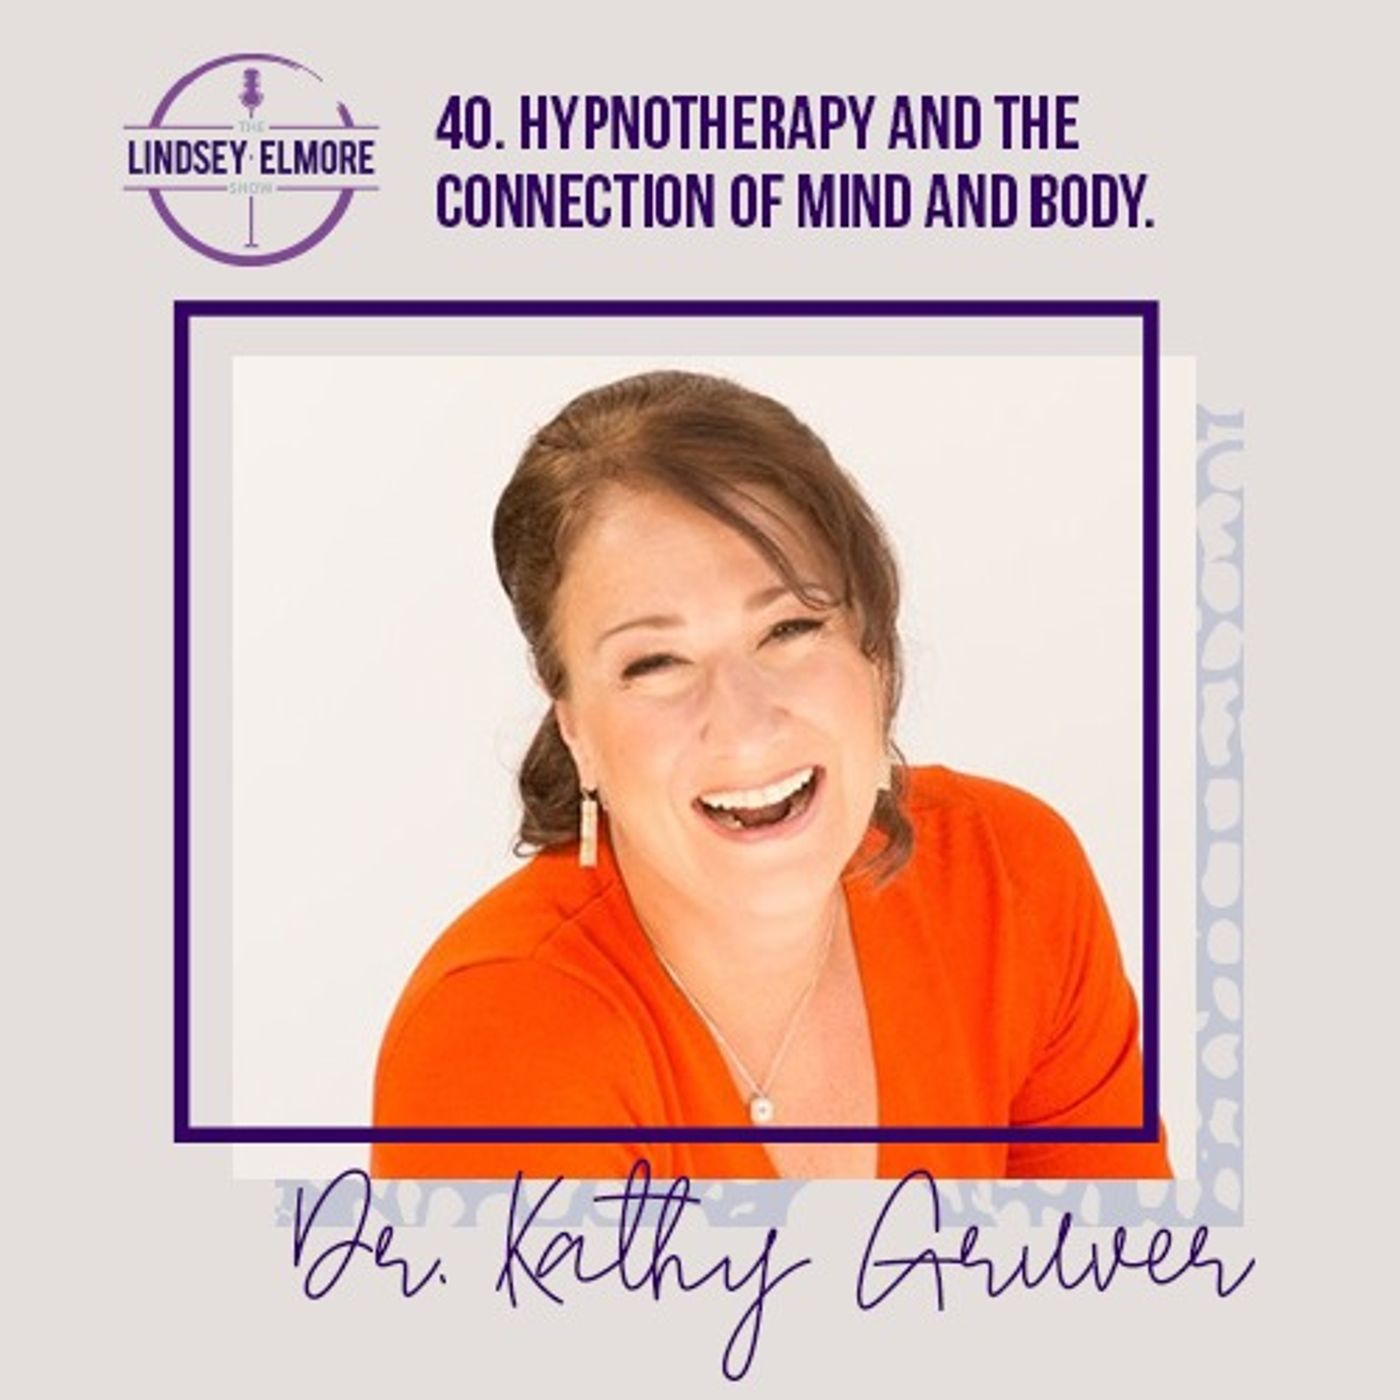 Hypnotherapy and the connection of mind and body. An interview with Dr. Kathy Gruver.